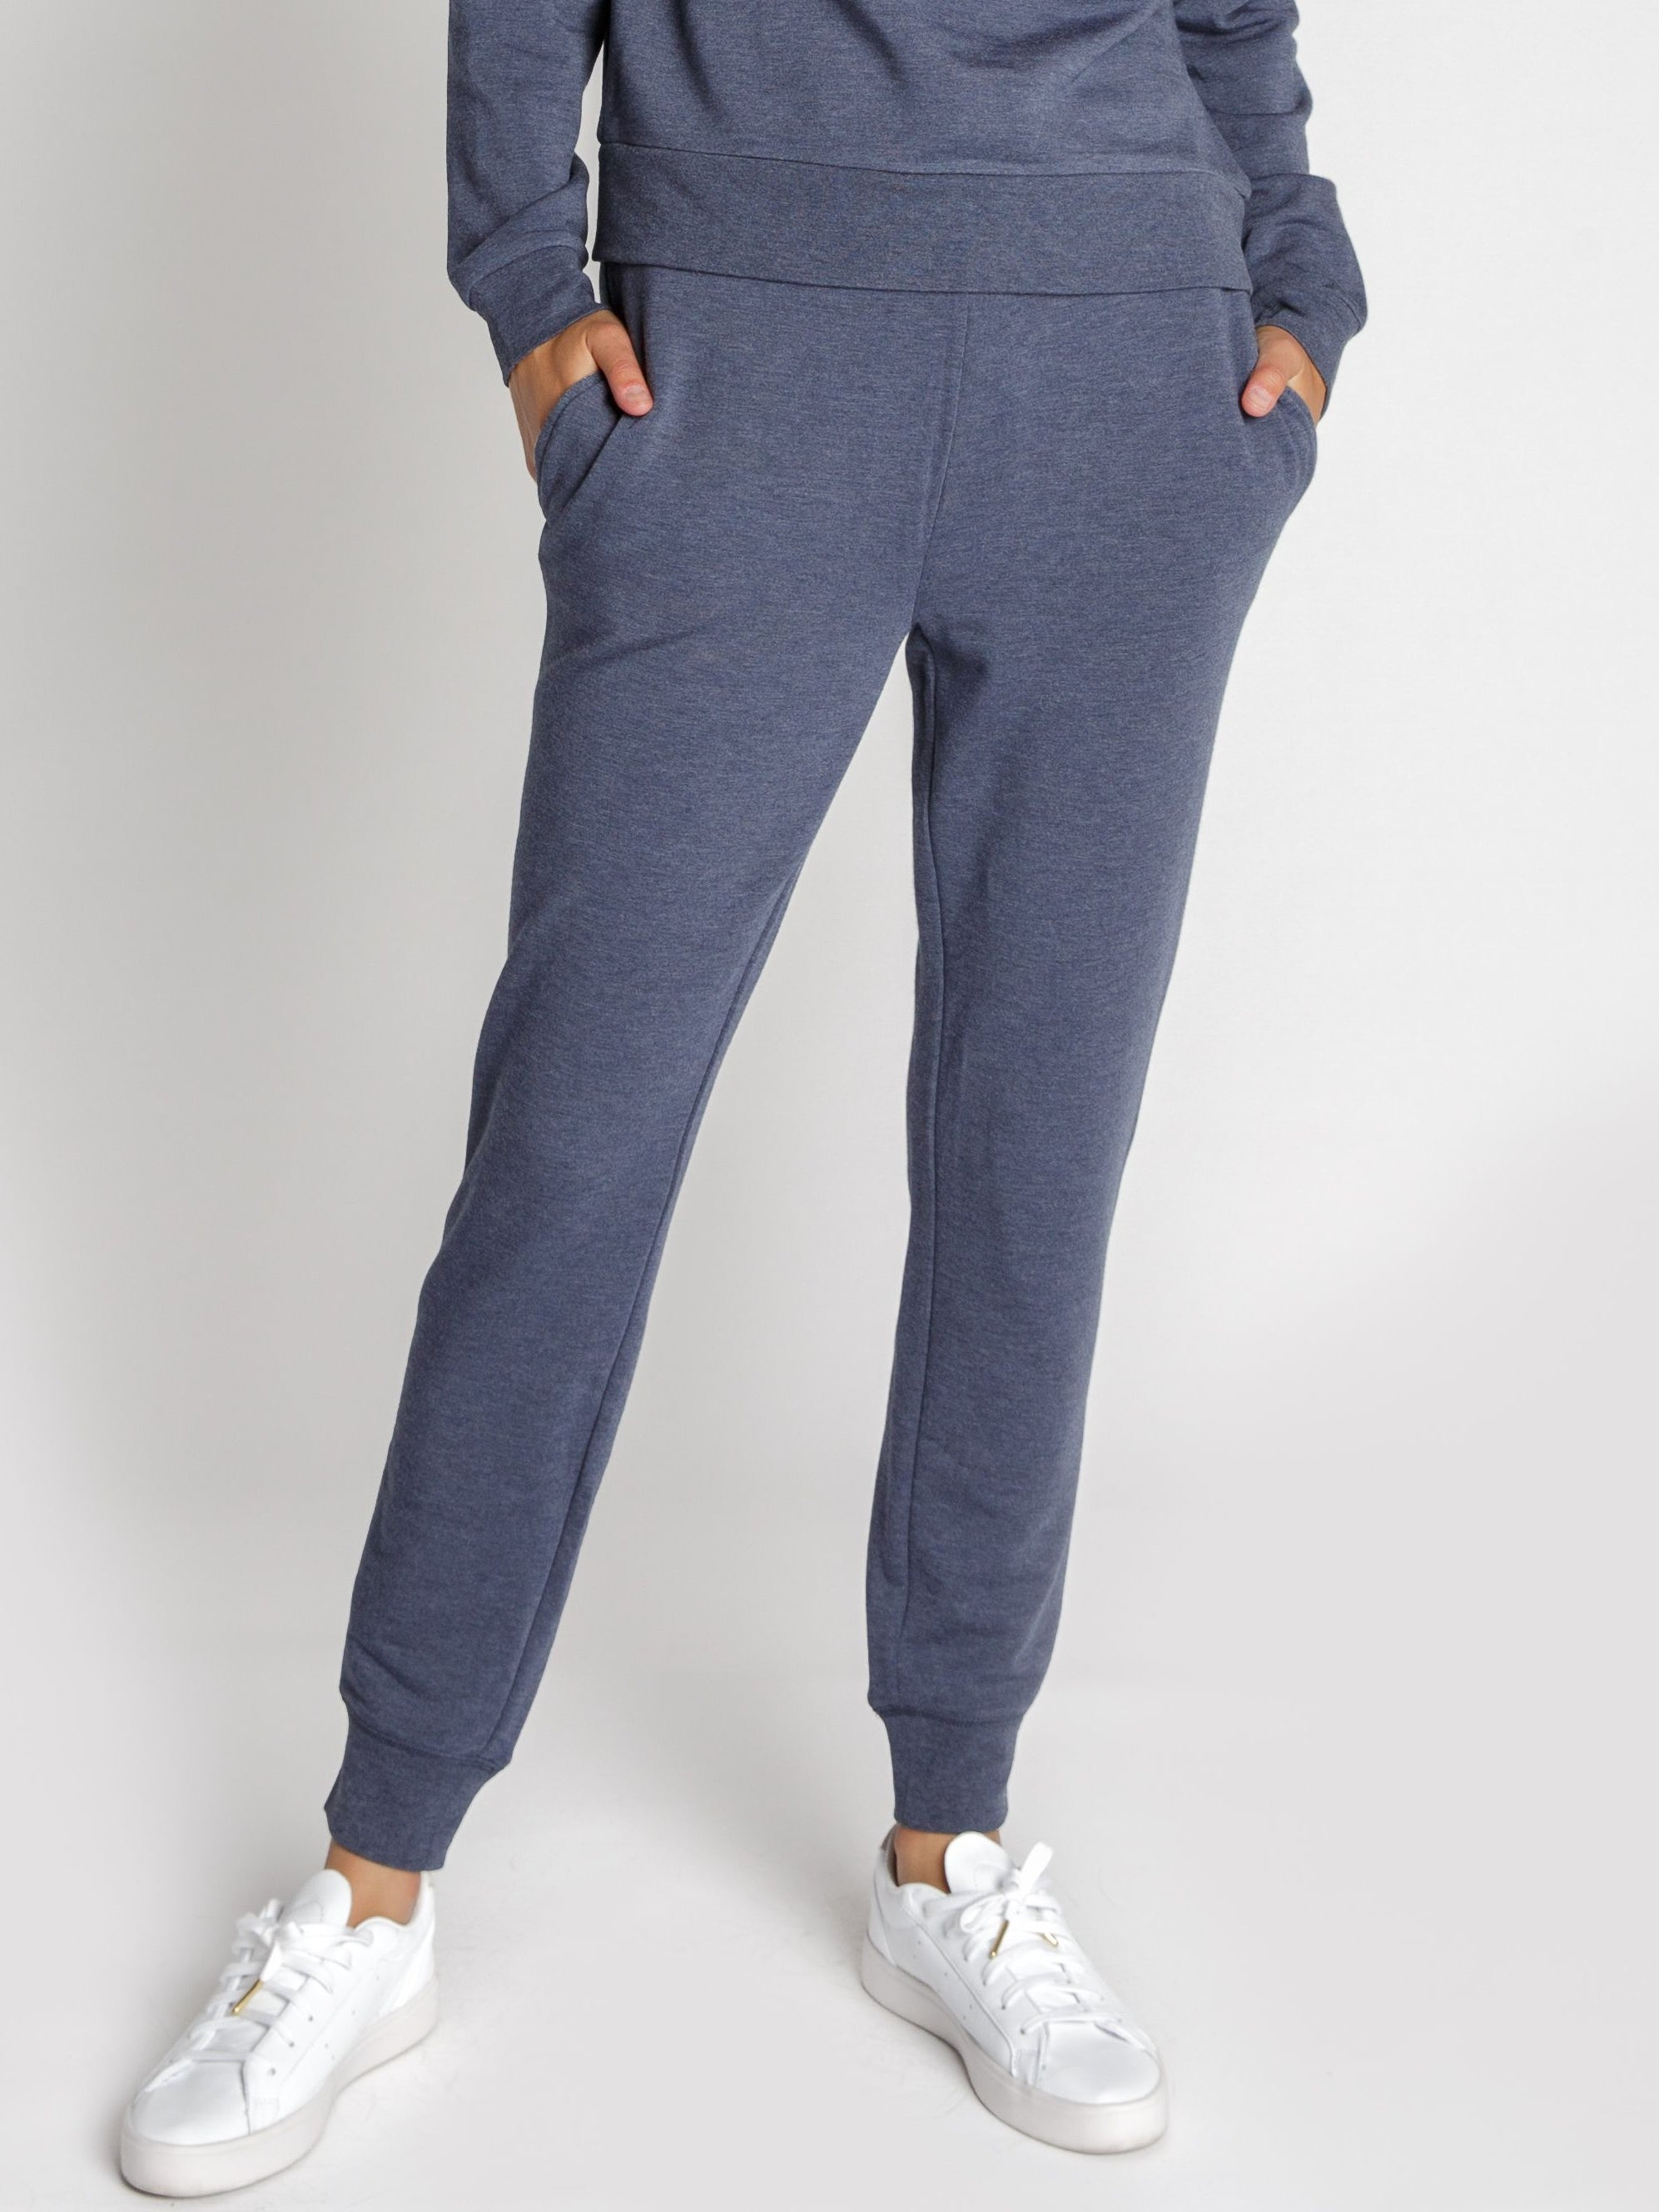 Cuddle up on rainy mornings with the most scrumptiously comfortable joggers ever. We love the cashmere like feel of the knit and you may just catch us wearing them as pj's too ;)! Pair them with your favorite tees, your most comfy sweater or the matching Rainy Morning Sweatshirt.   Fits true to size.  50% Acrylic, 48% Rayon, 2% Spandex Do not tumble dry.